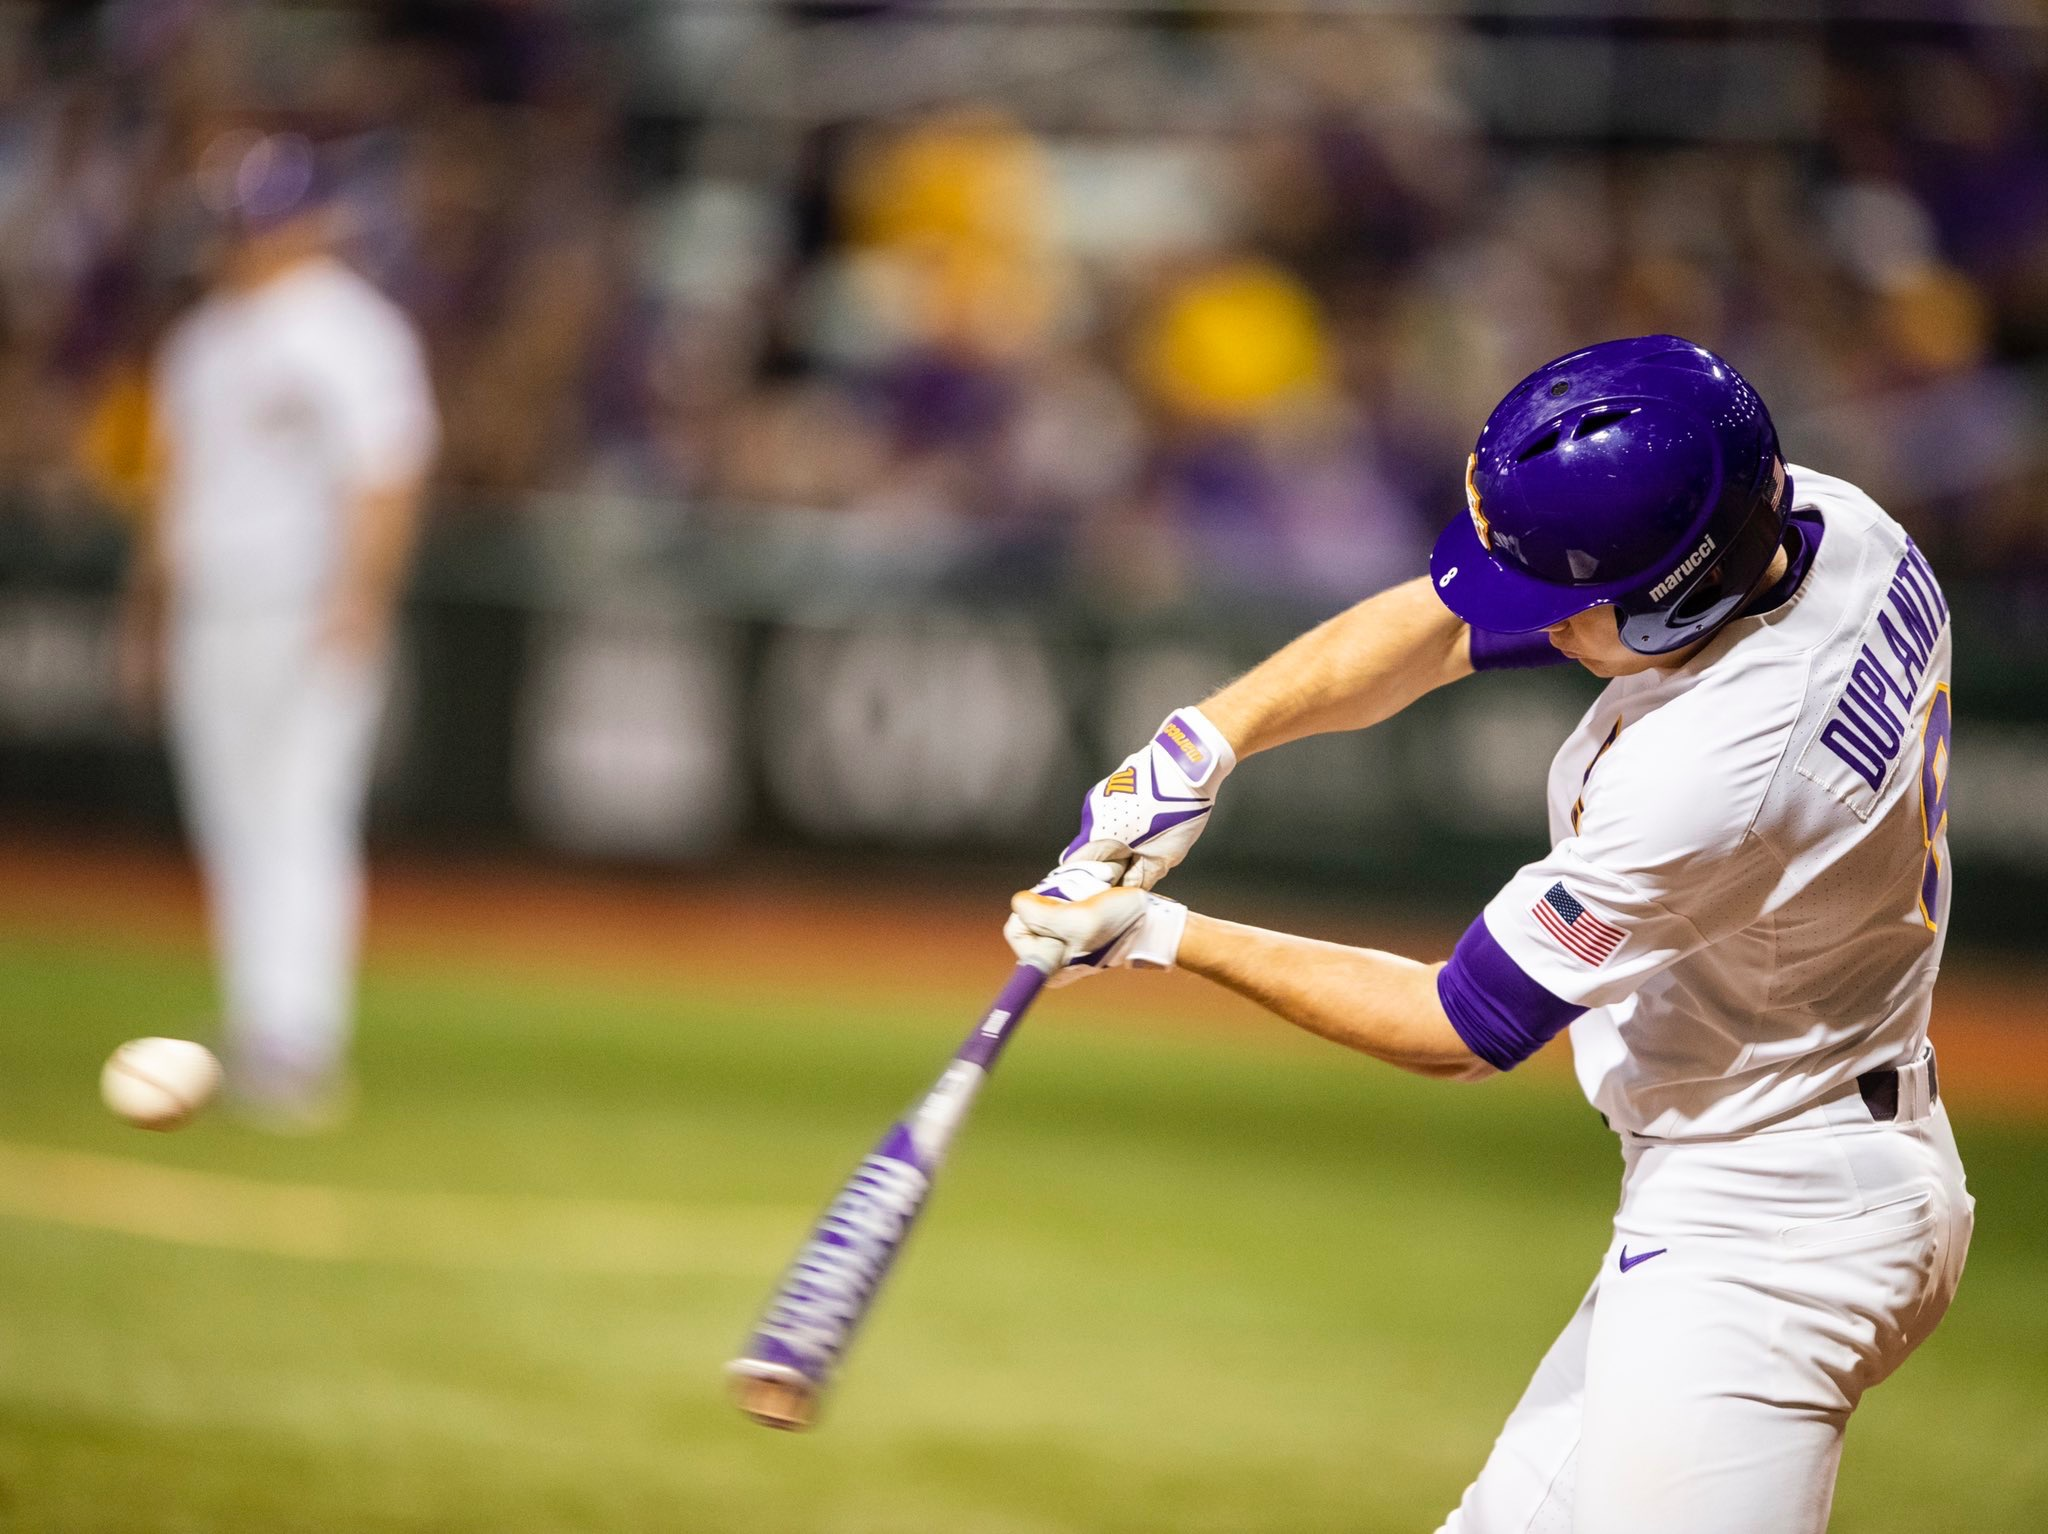 LSU improves to 4-0 with win over Southeastern